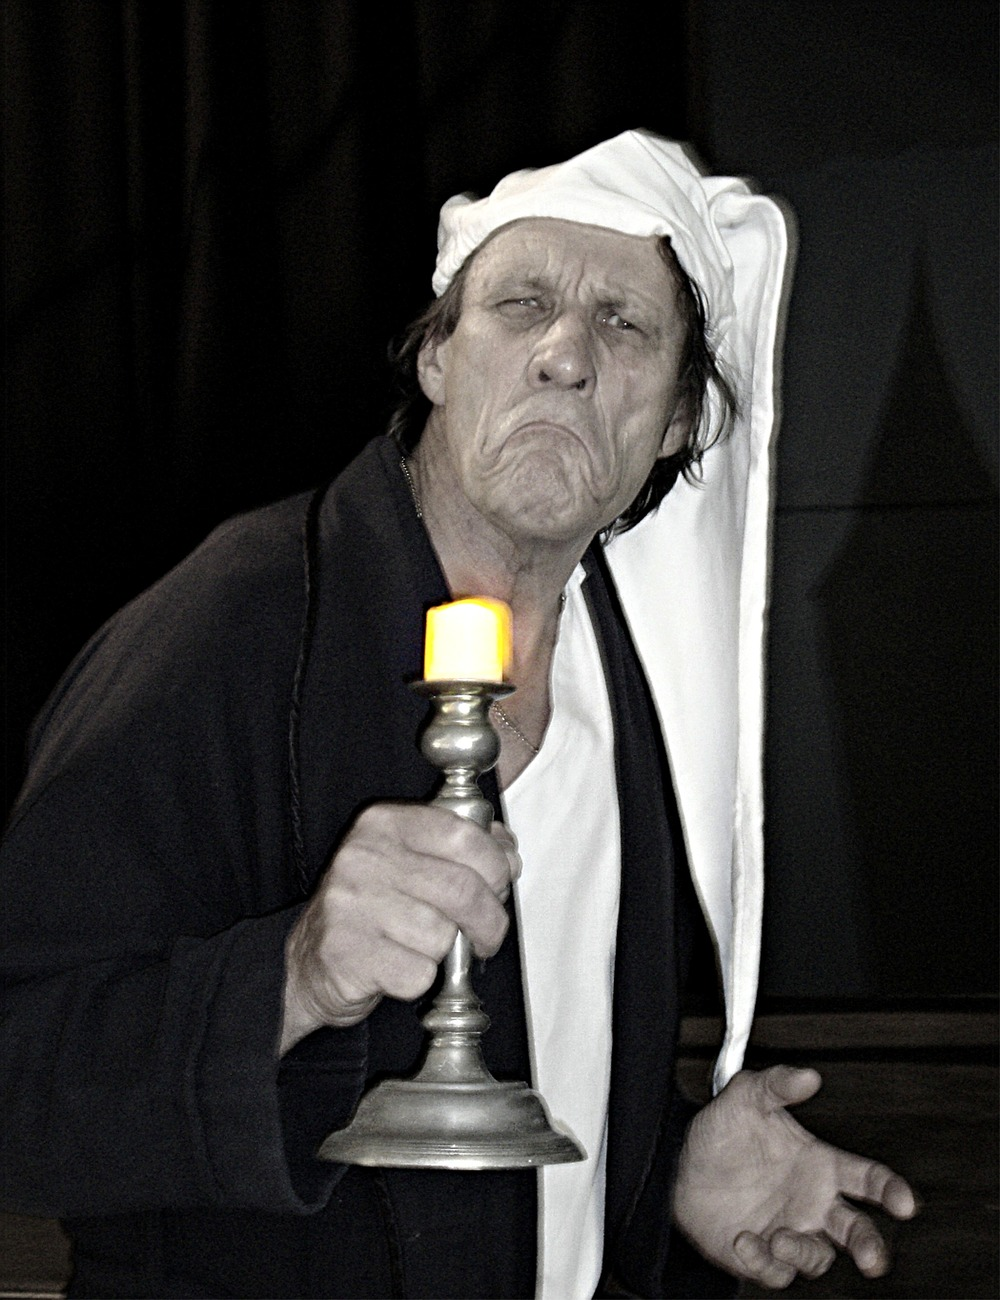 Willy Smeets plays Scrooge in  A Christmas Carol  this November. Picture: Sarah Christiner